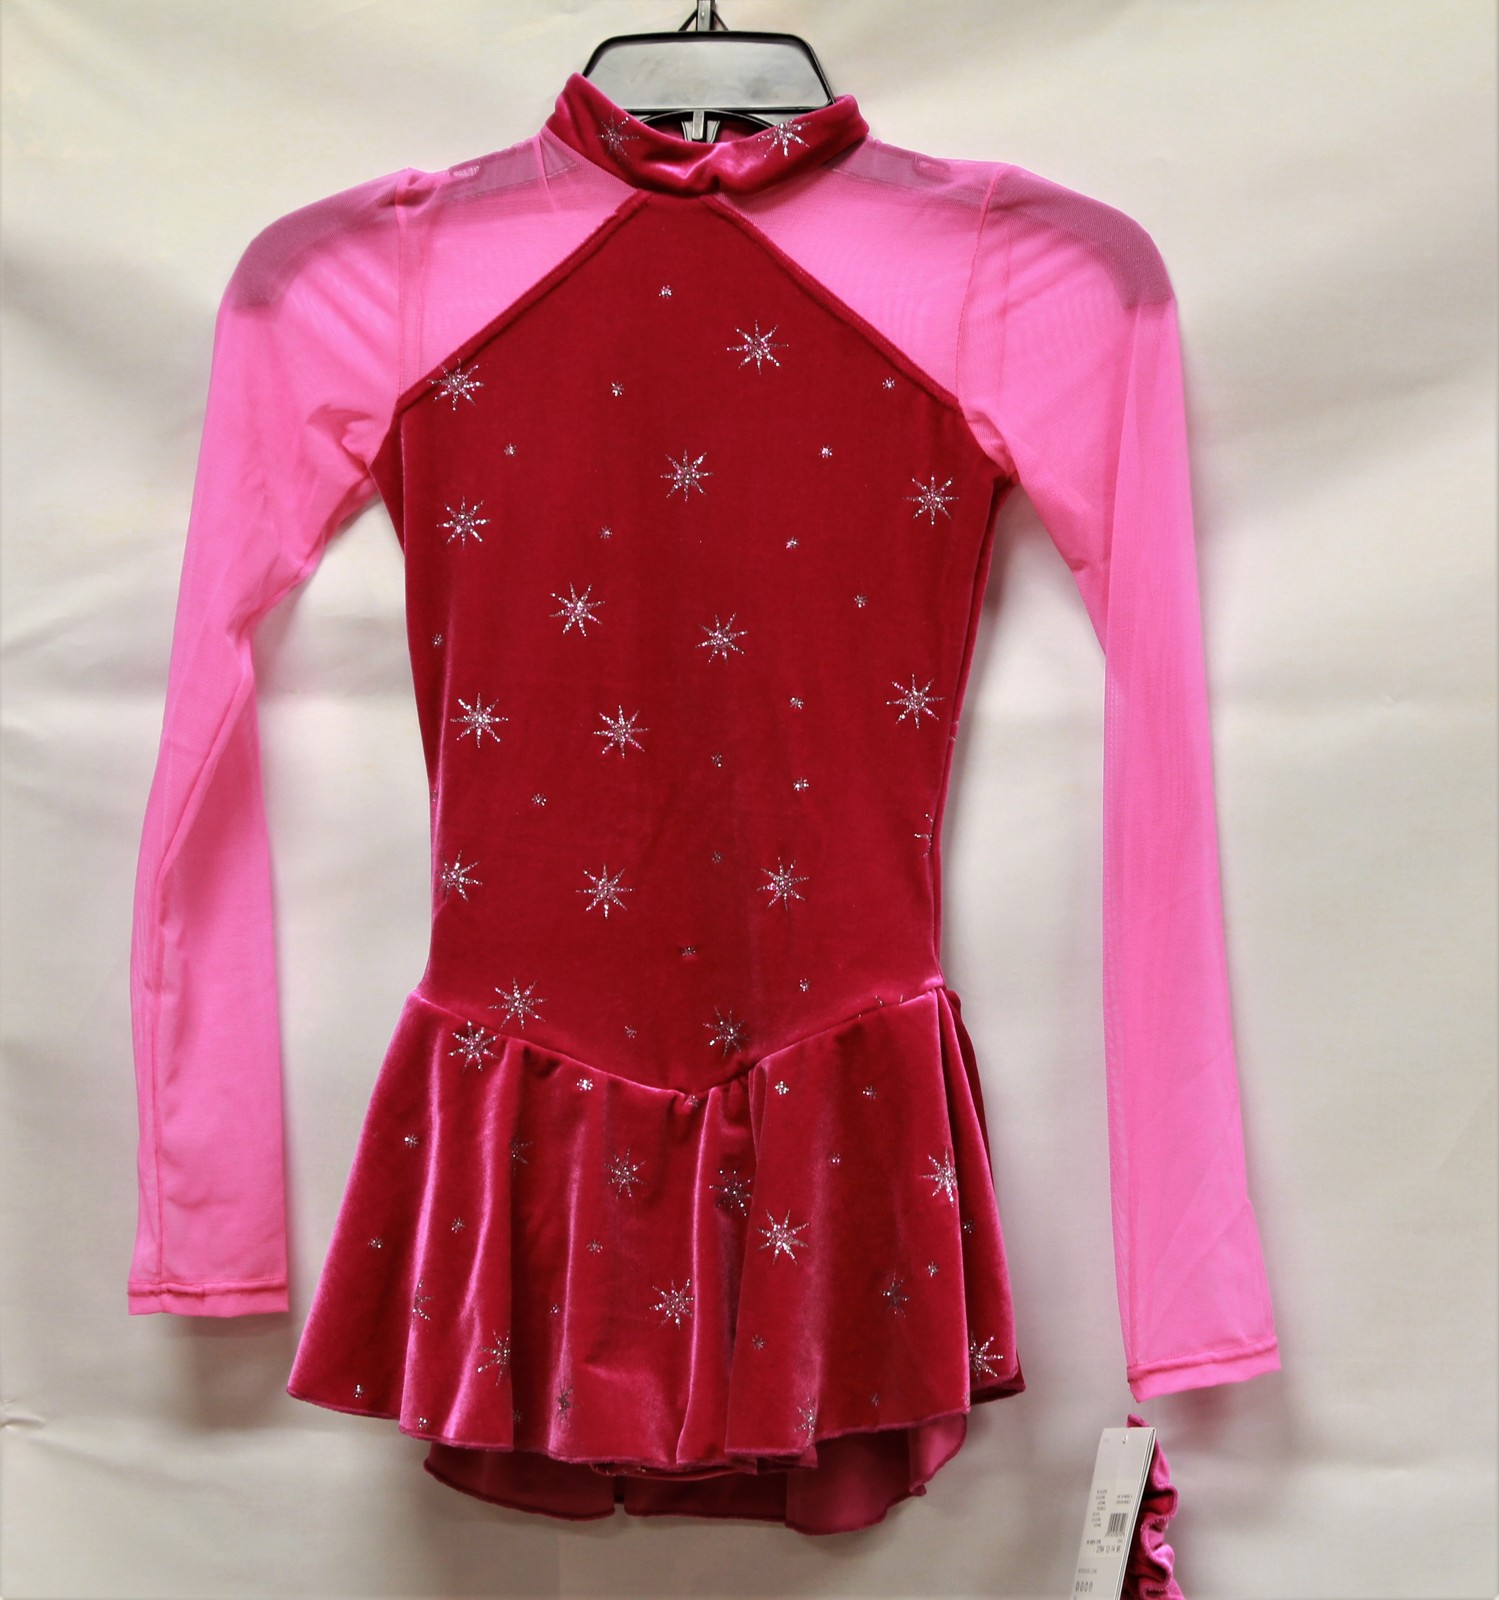 Primary image for Mondor Model 2764 Girls Skating Dress - North Star Child 10-12